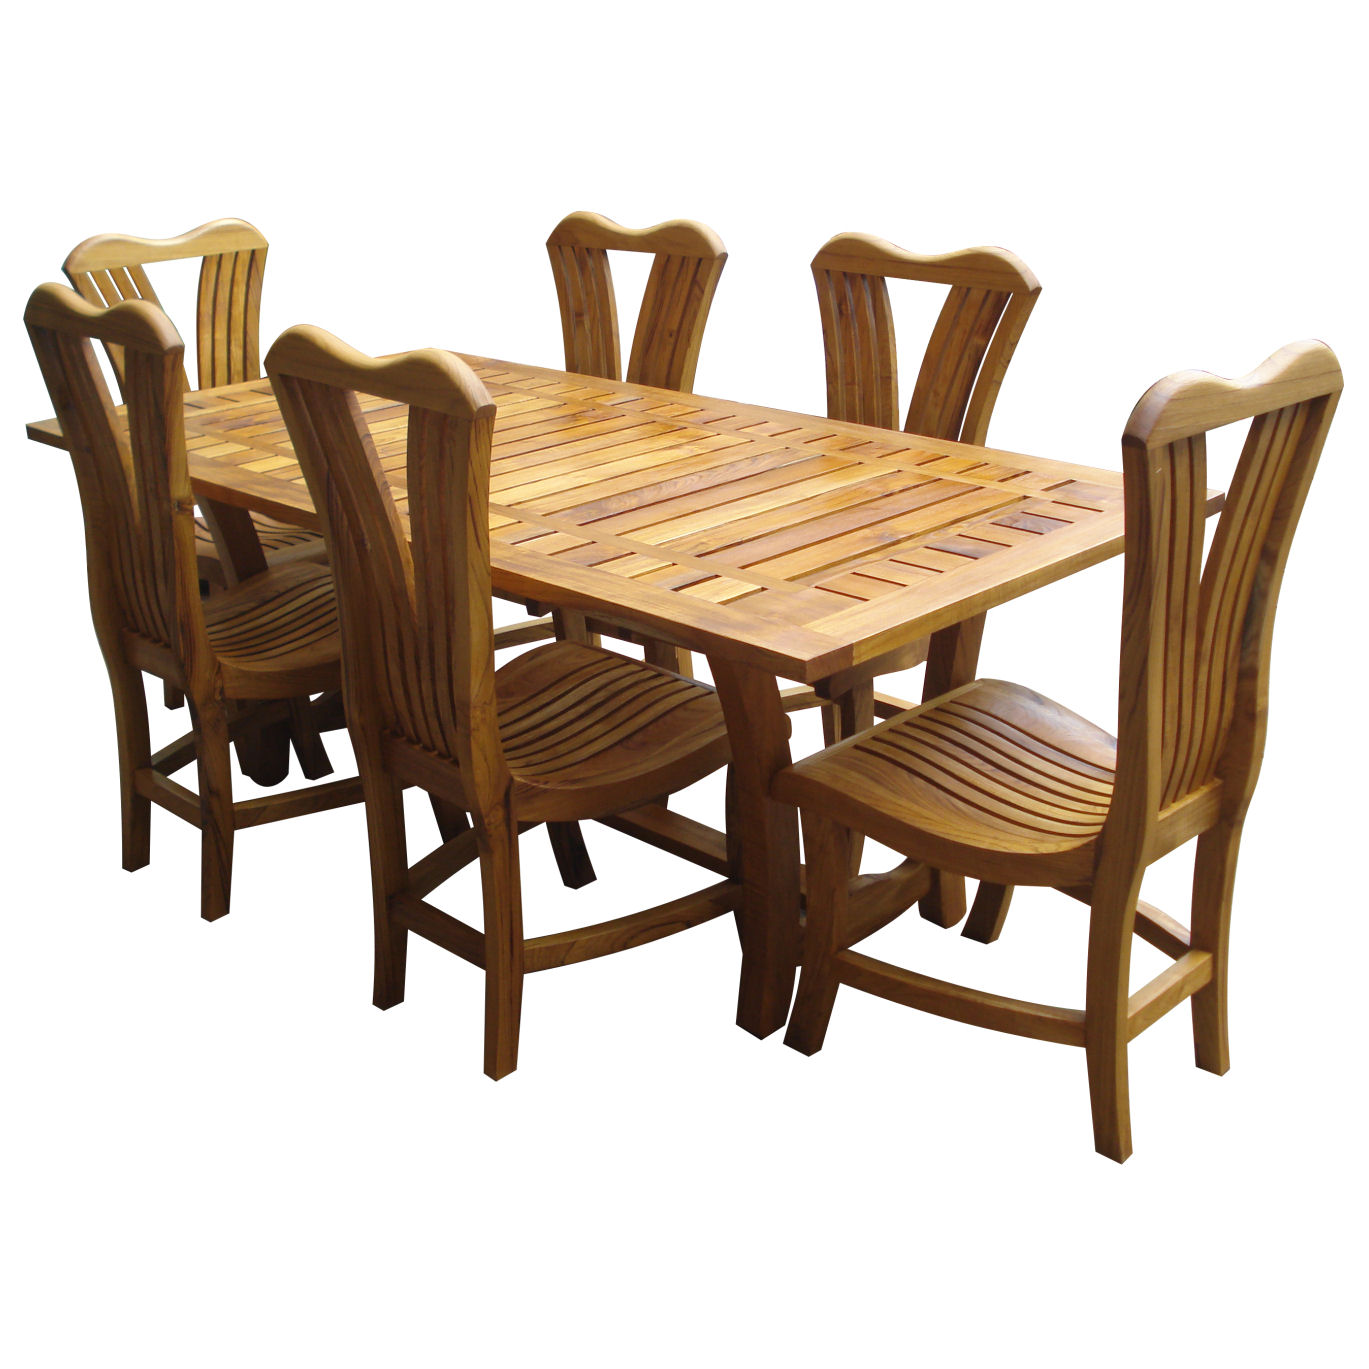 Teak Outdoor Furniture Sets Tofs001 Wholesale Teak Furniture